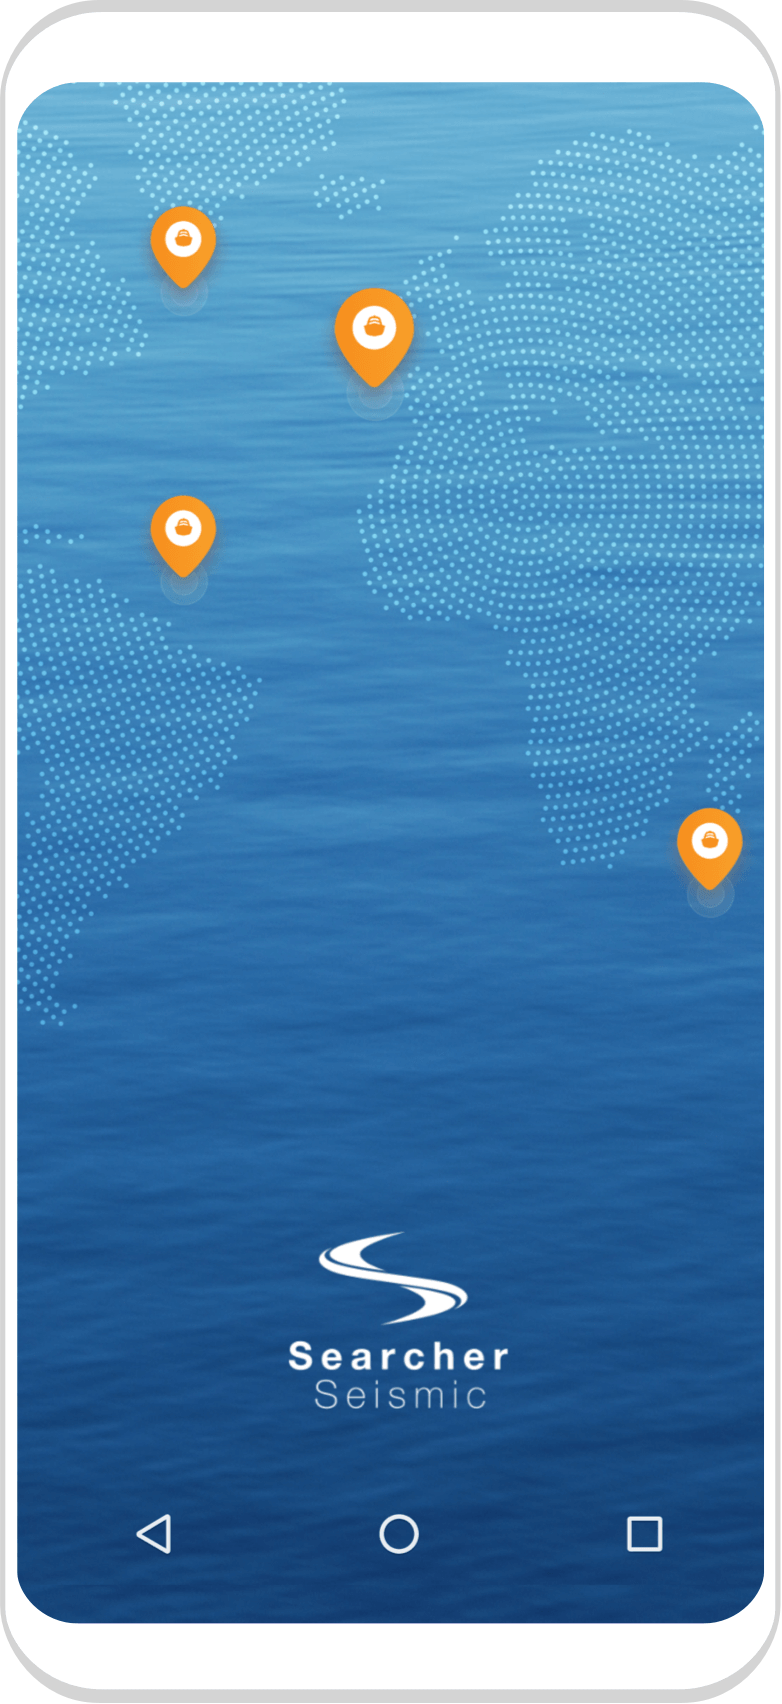 Searcher seismic app on phone screen